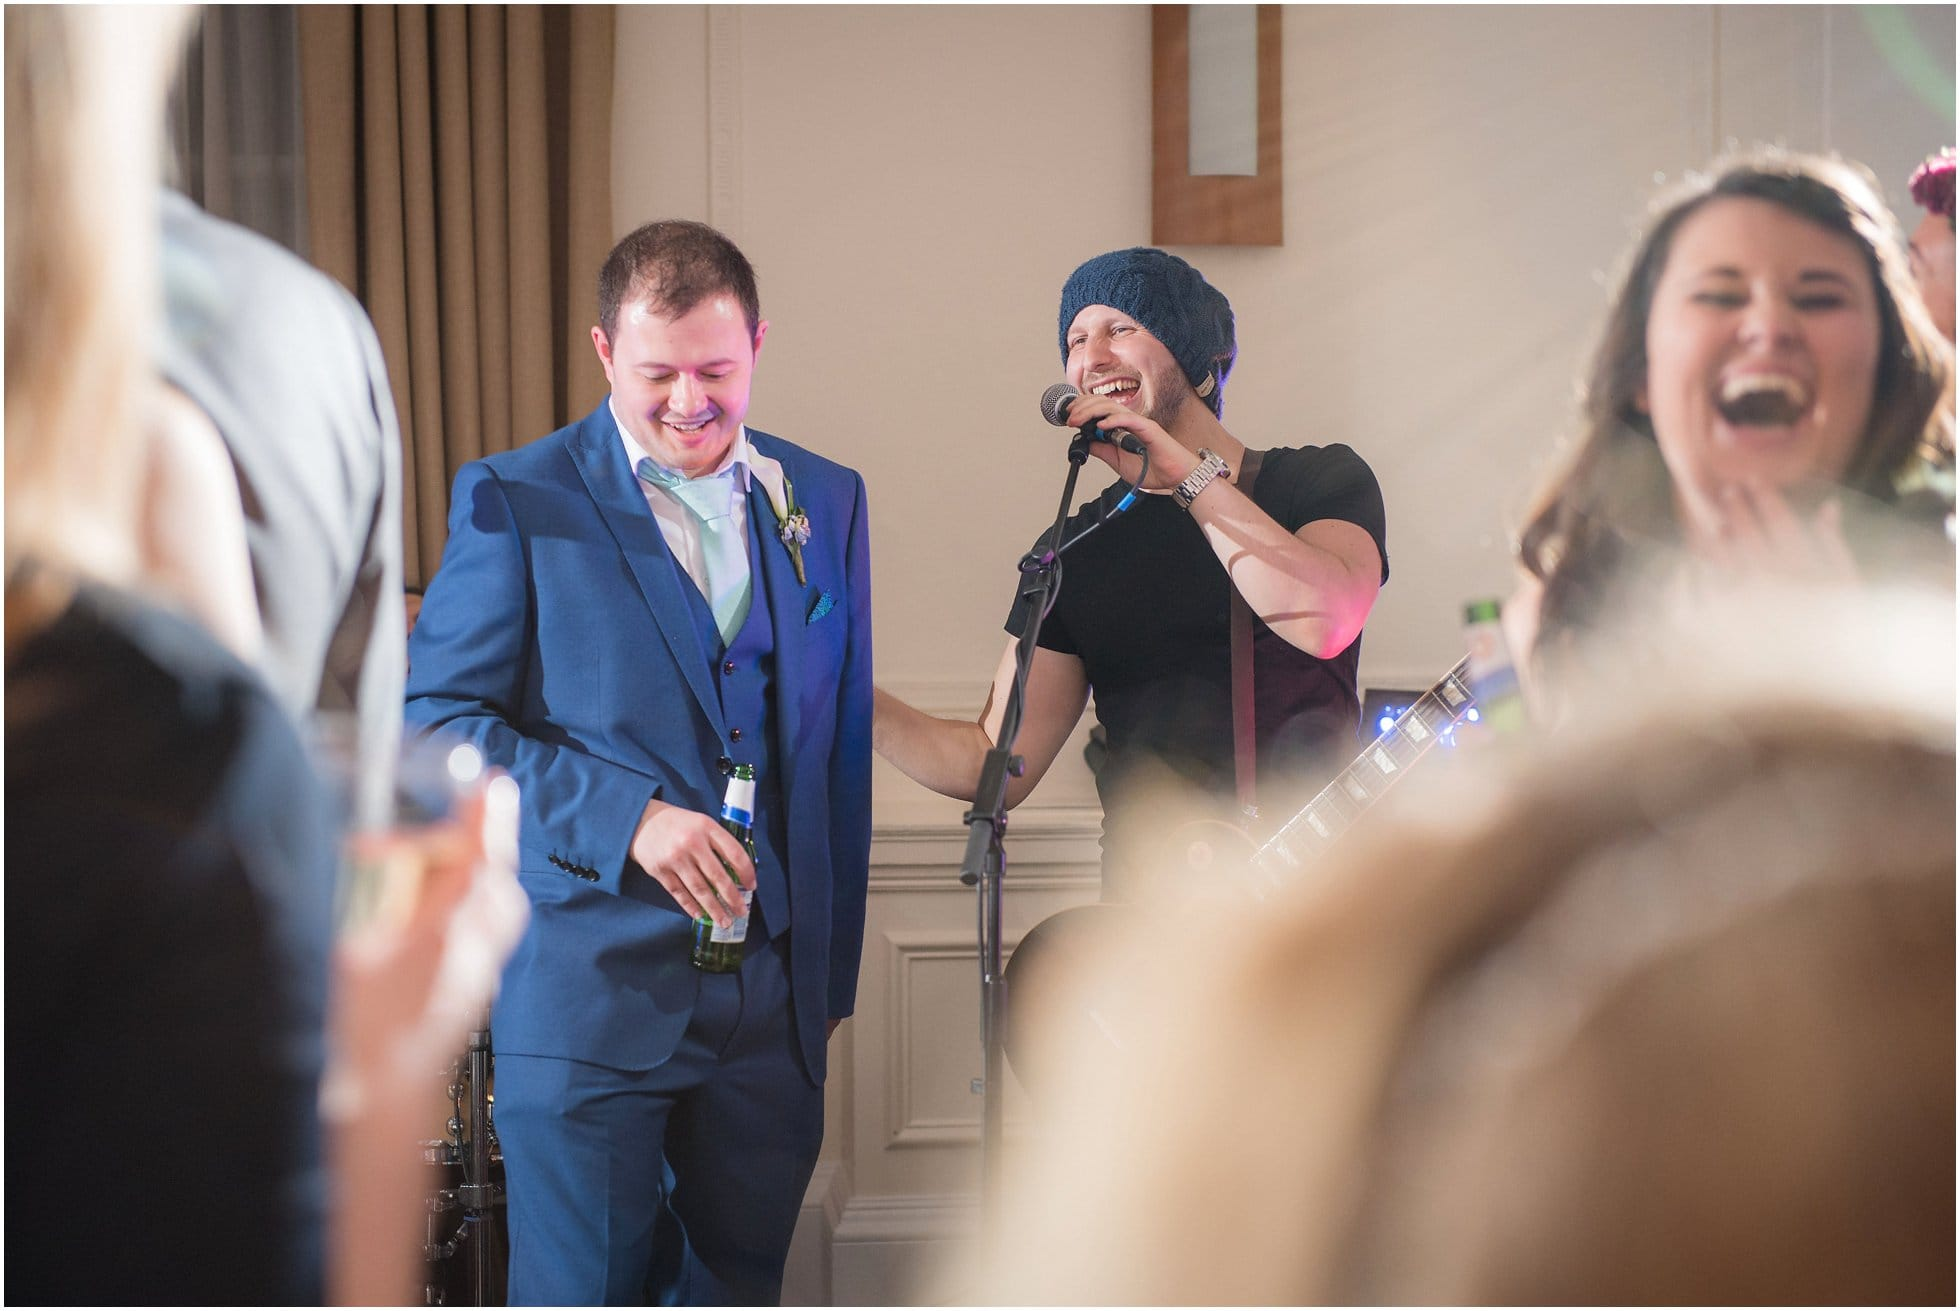 The groom being asked to do something he really doesn't want to do!